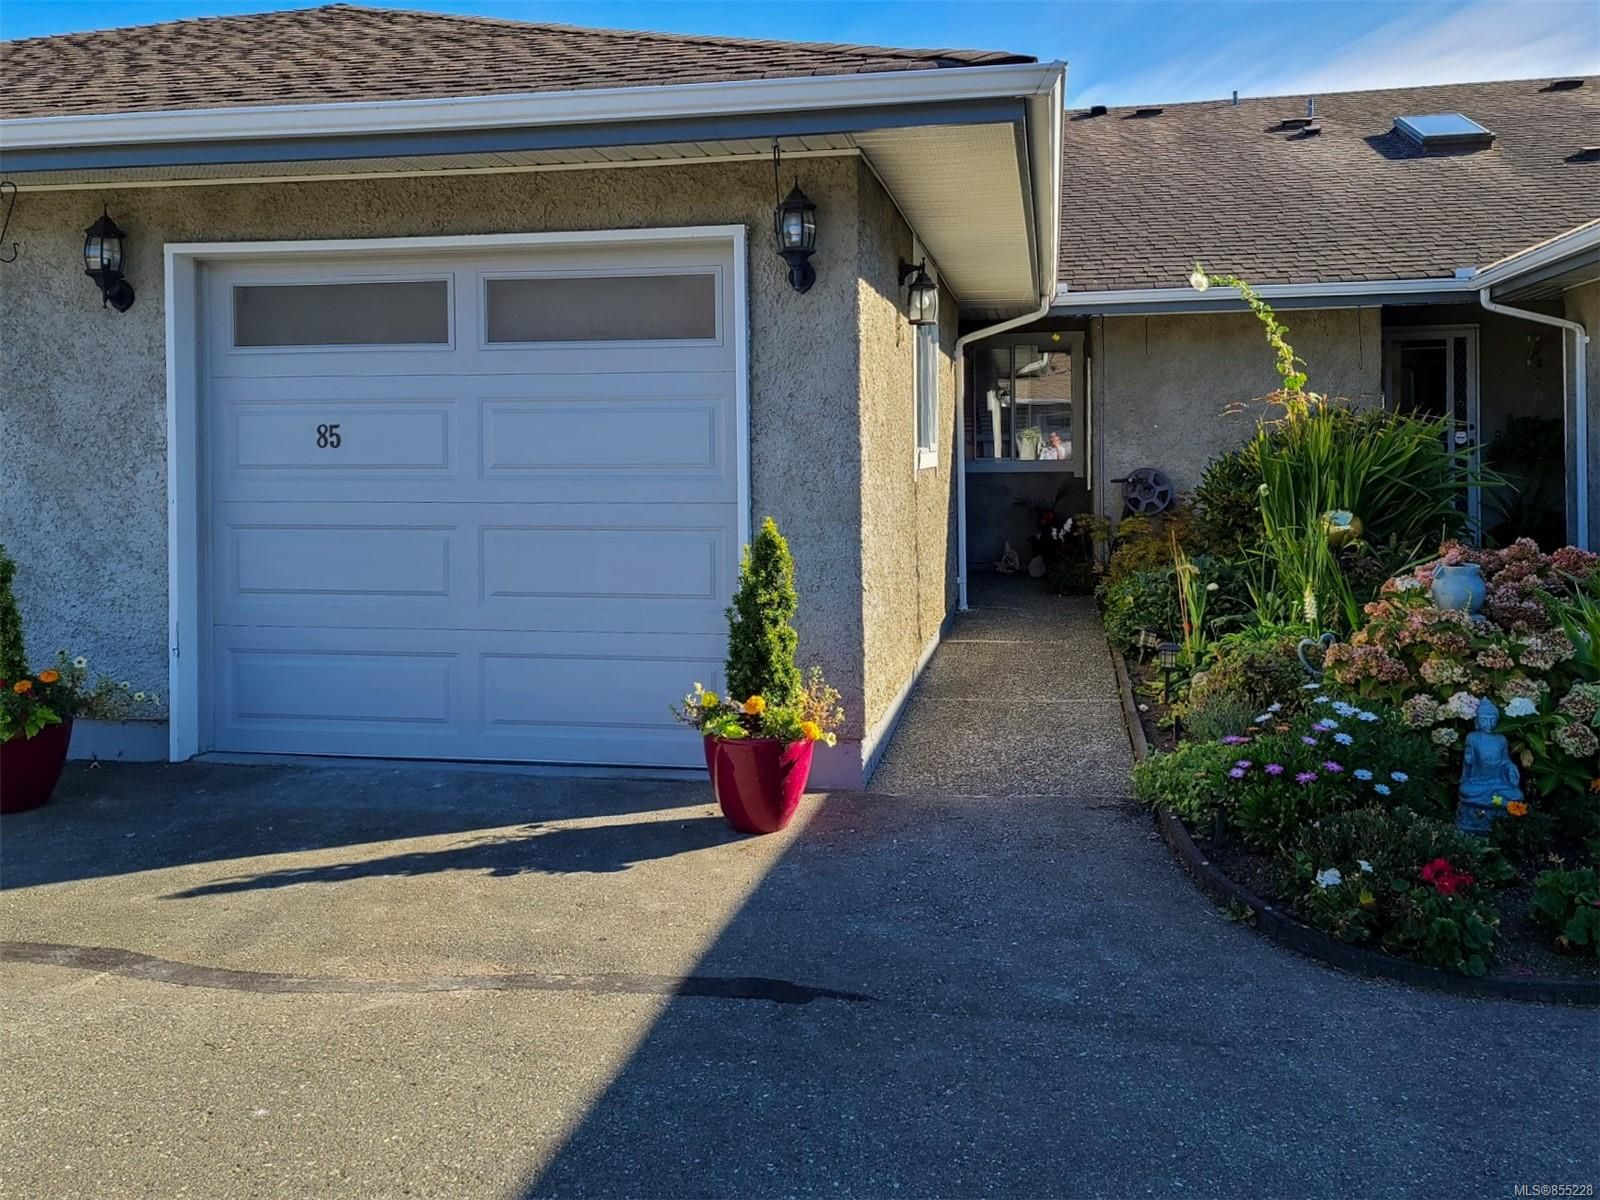 Main Photo: 85 2600 Ferguson Rd in : CS Turgoose Row/Townhouse for sale (Central Saanich)  : MLS®# 855228